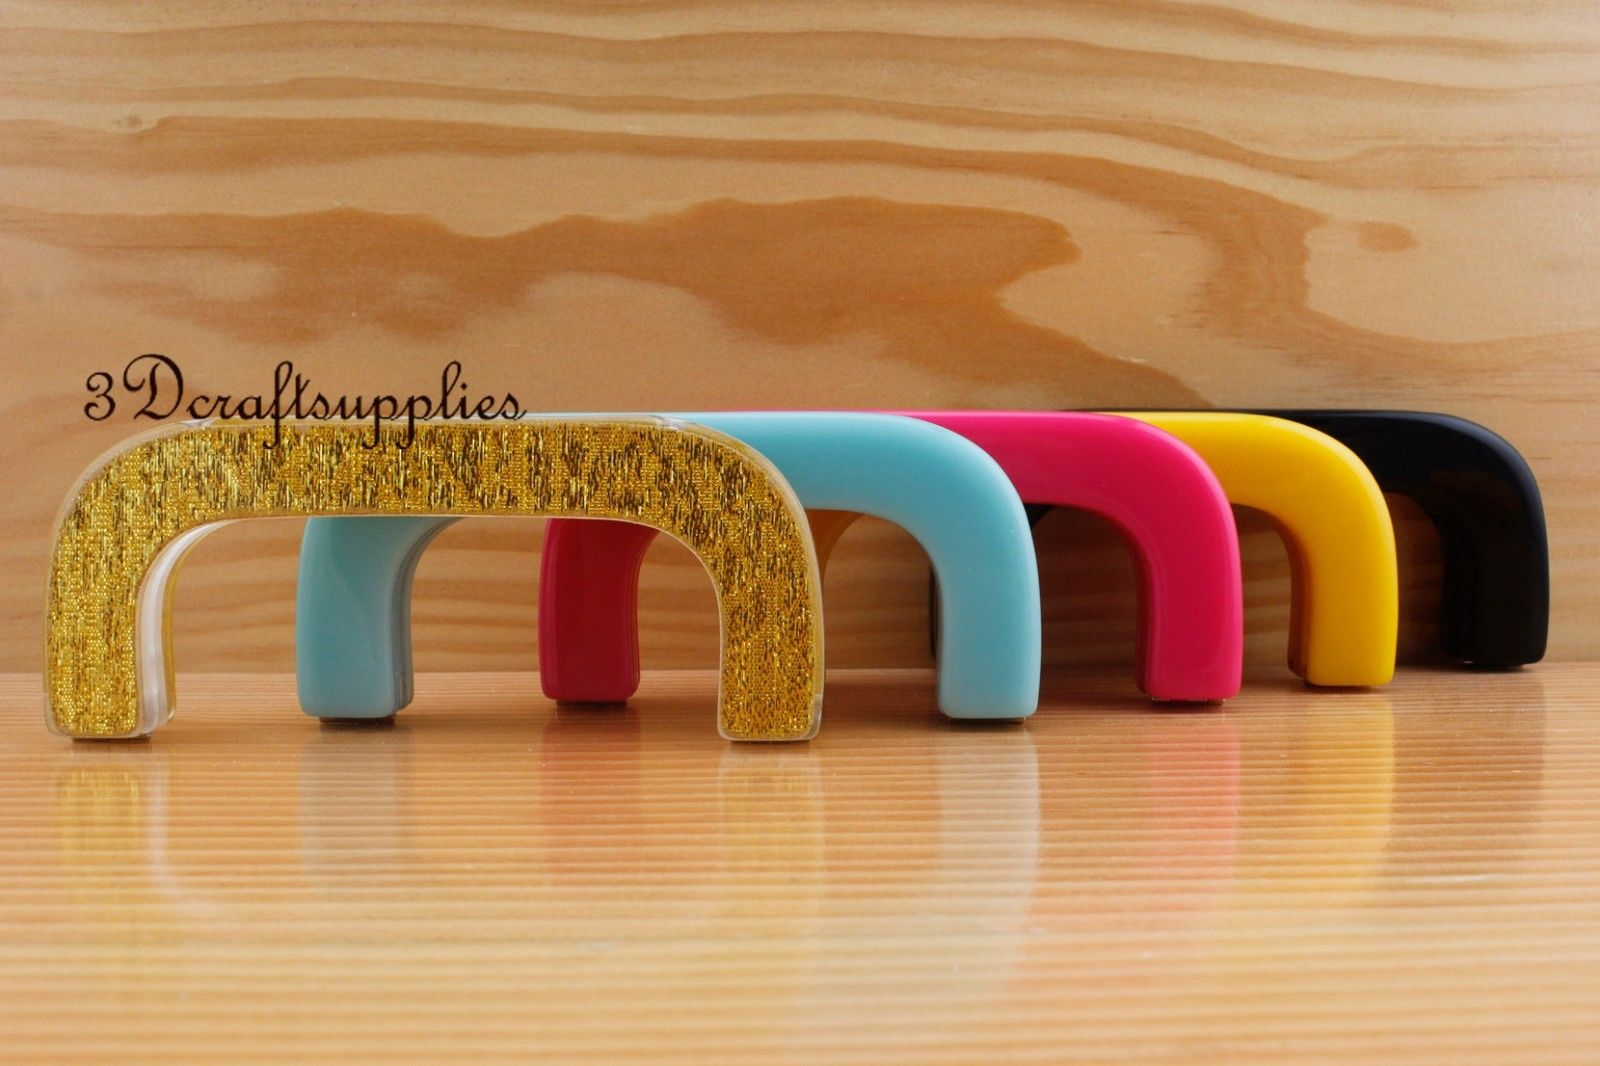 Purse frame 5 inch x 2 inch ( 12.5 cm x 5 cm ) Acrylic Resin 5 colors to choose